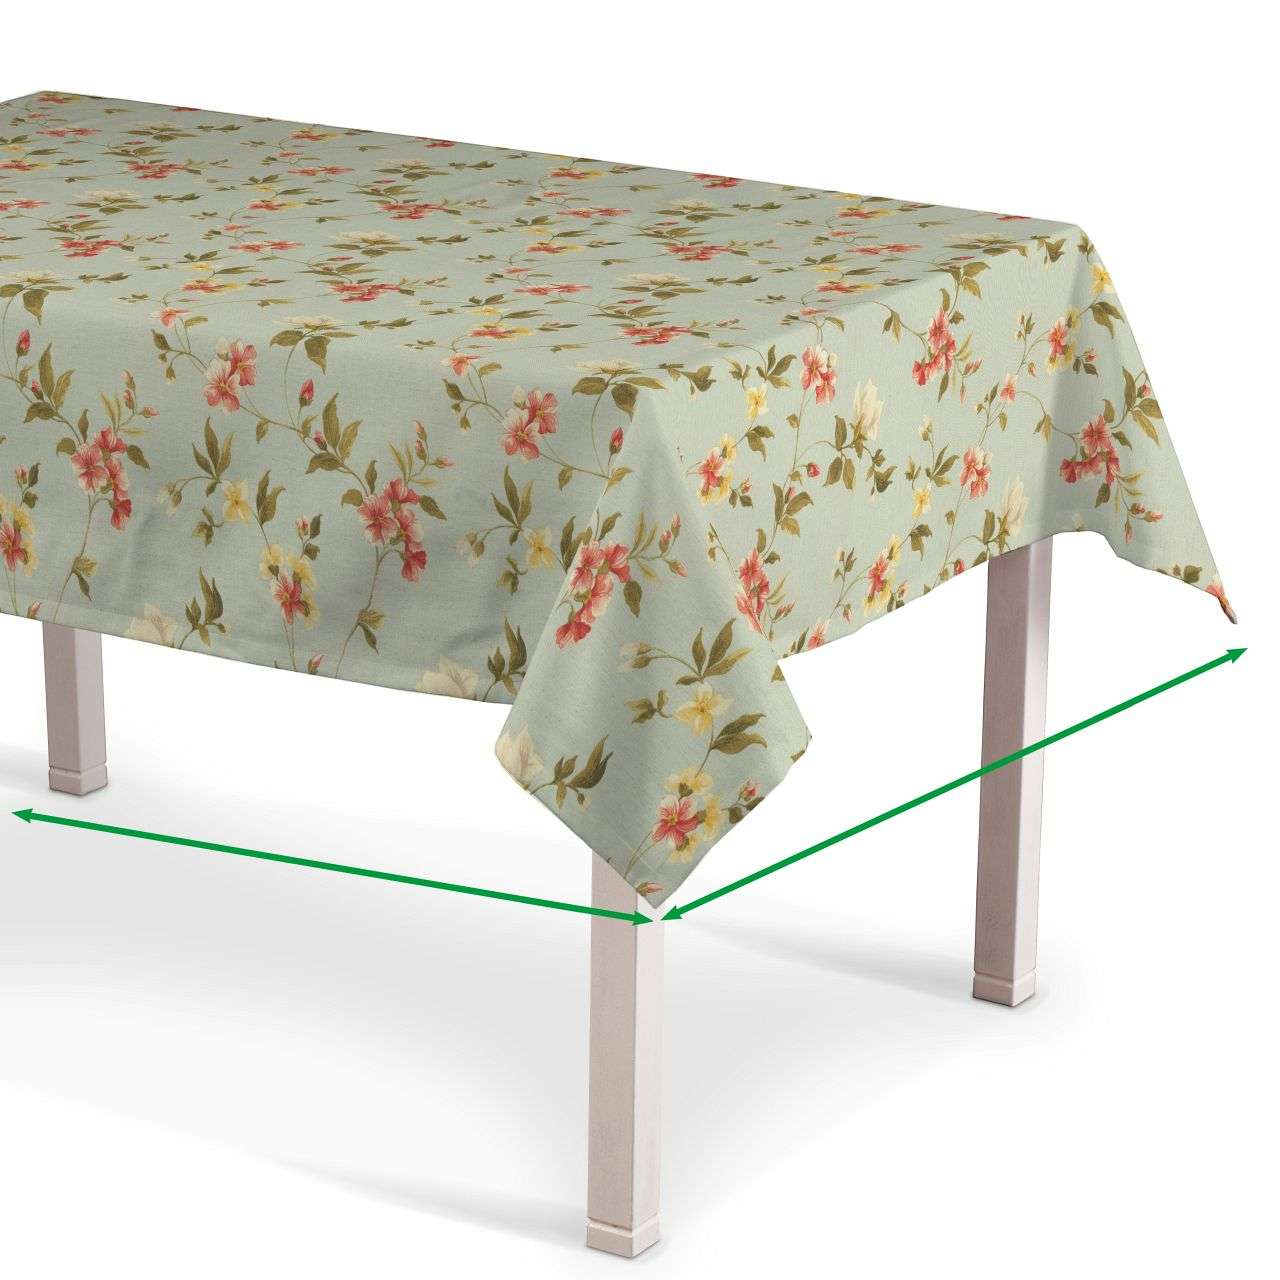 Rectangular tablecloth in collection Londres, fabric: 124-65